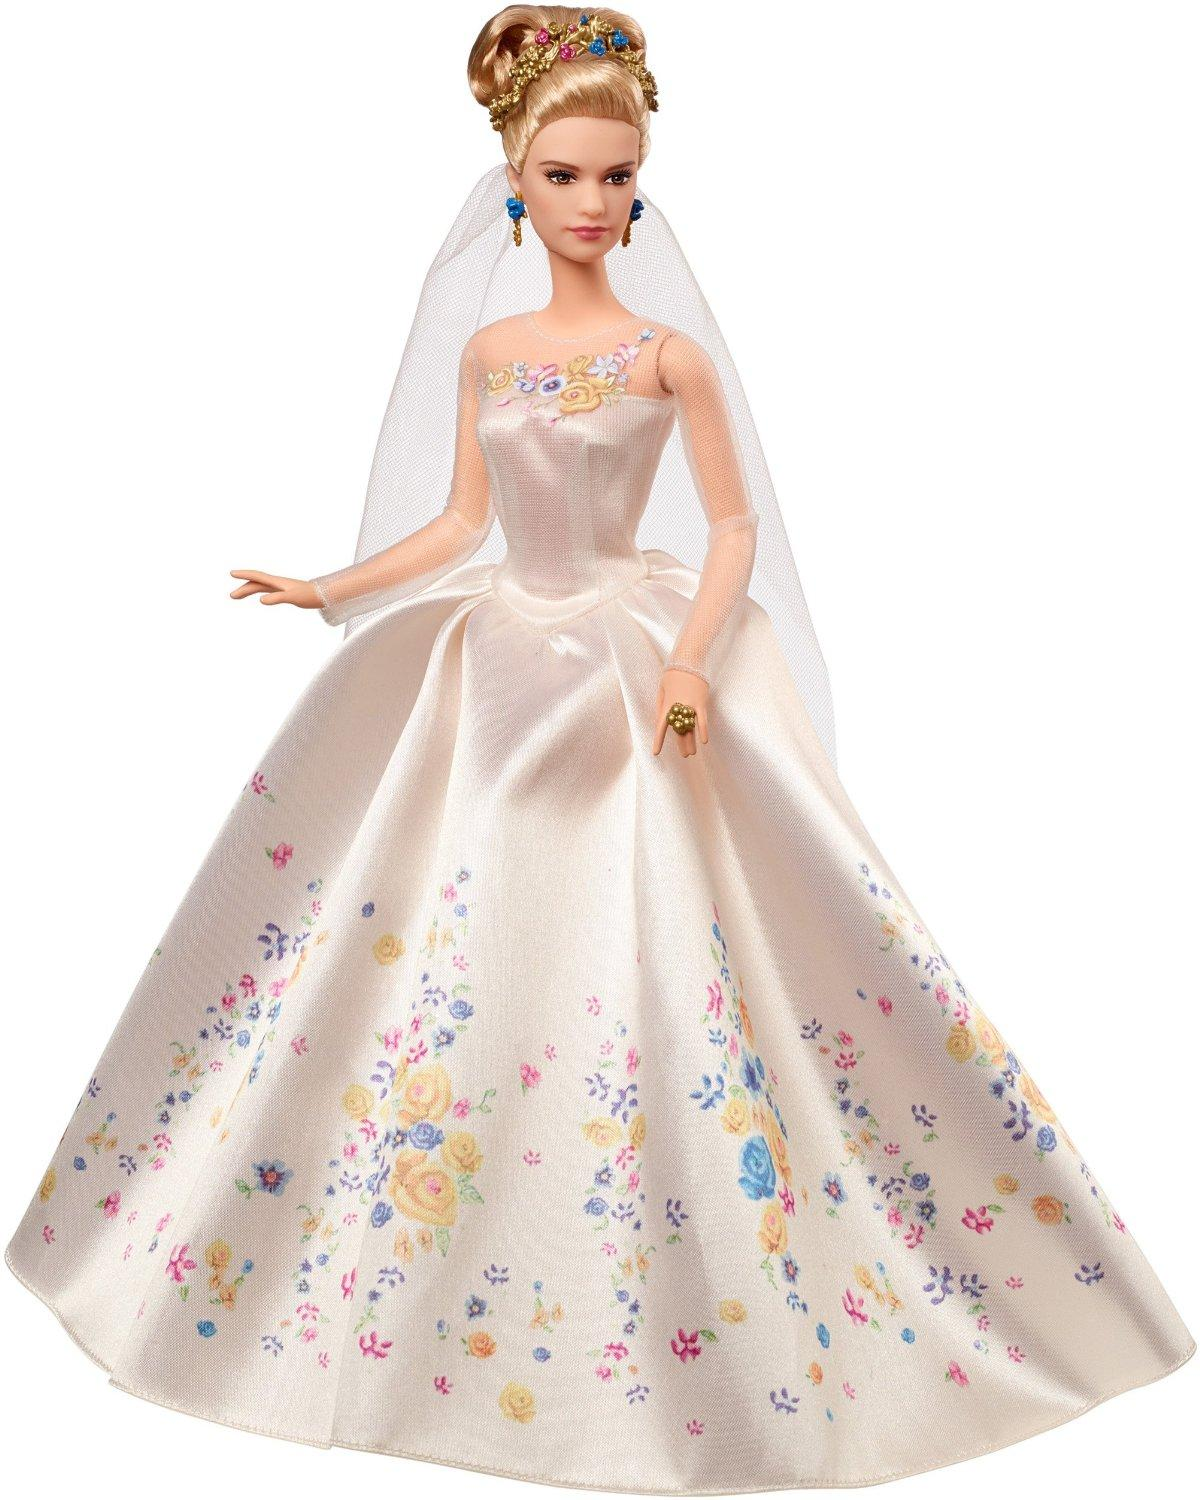 Disney Wedding Day Cinderella Doll